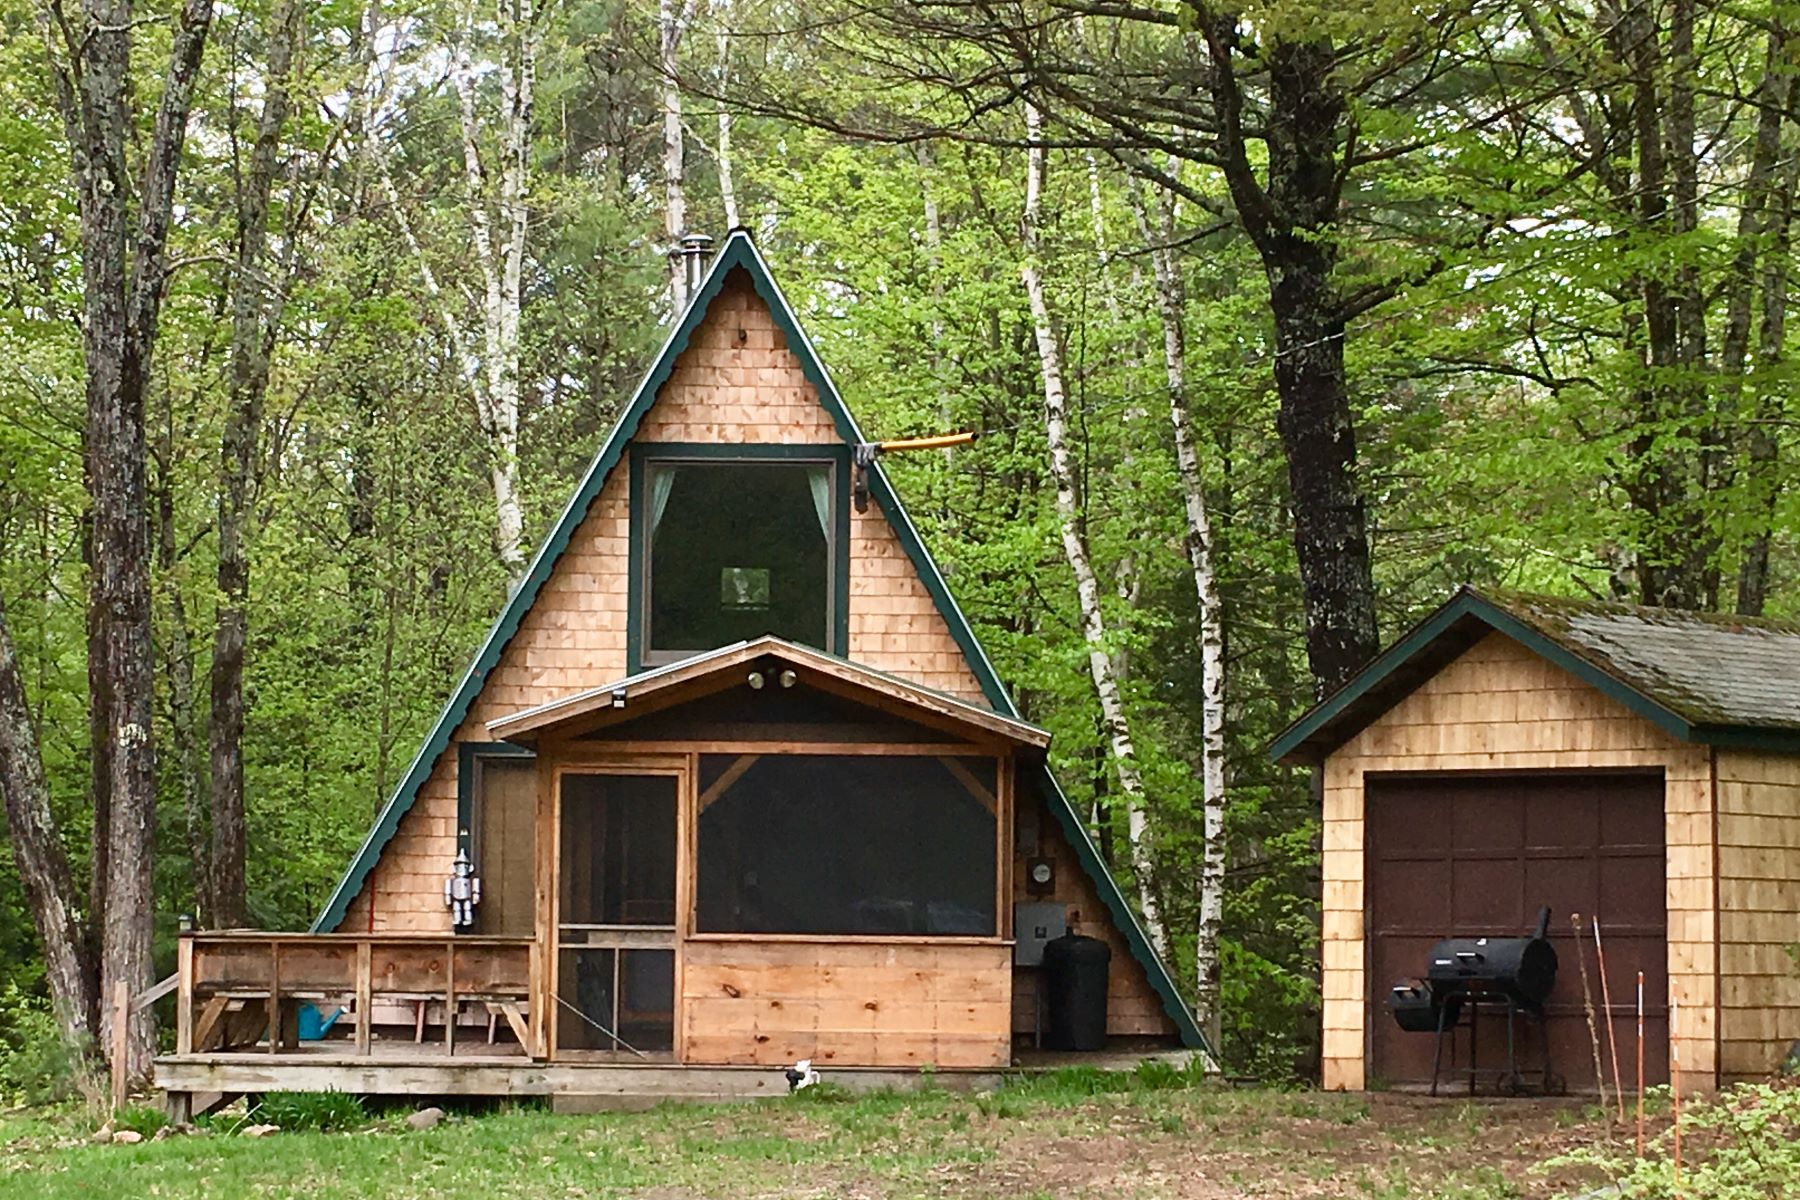 single family homes for Sale at Two Bedroom A-Frame in Tunbridge on 10 Acres 49 Ward Hill Rd Tunbridge, Vermont 05077 United States